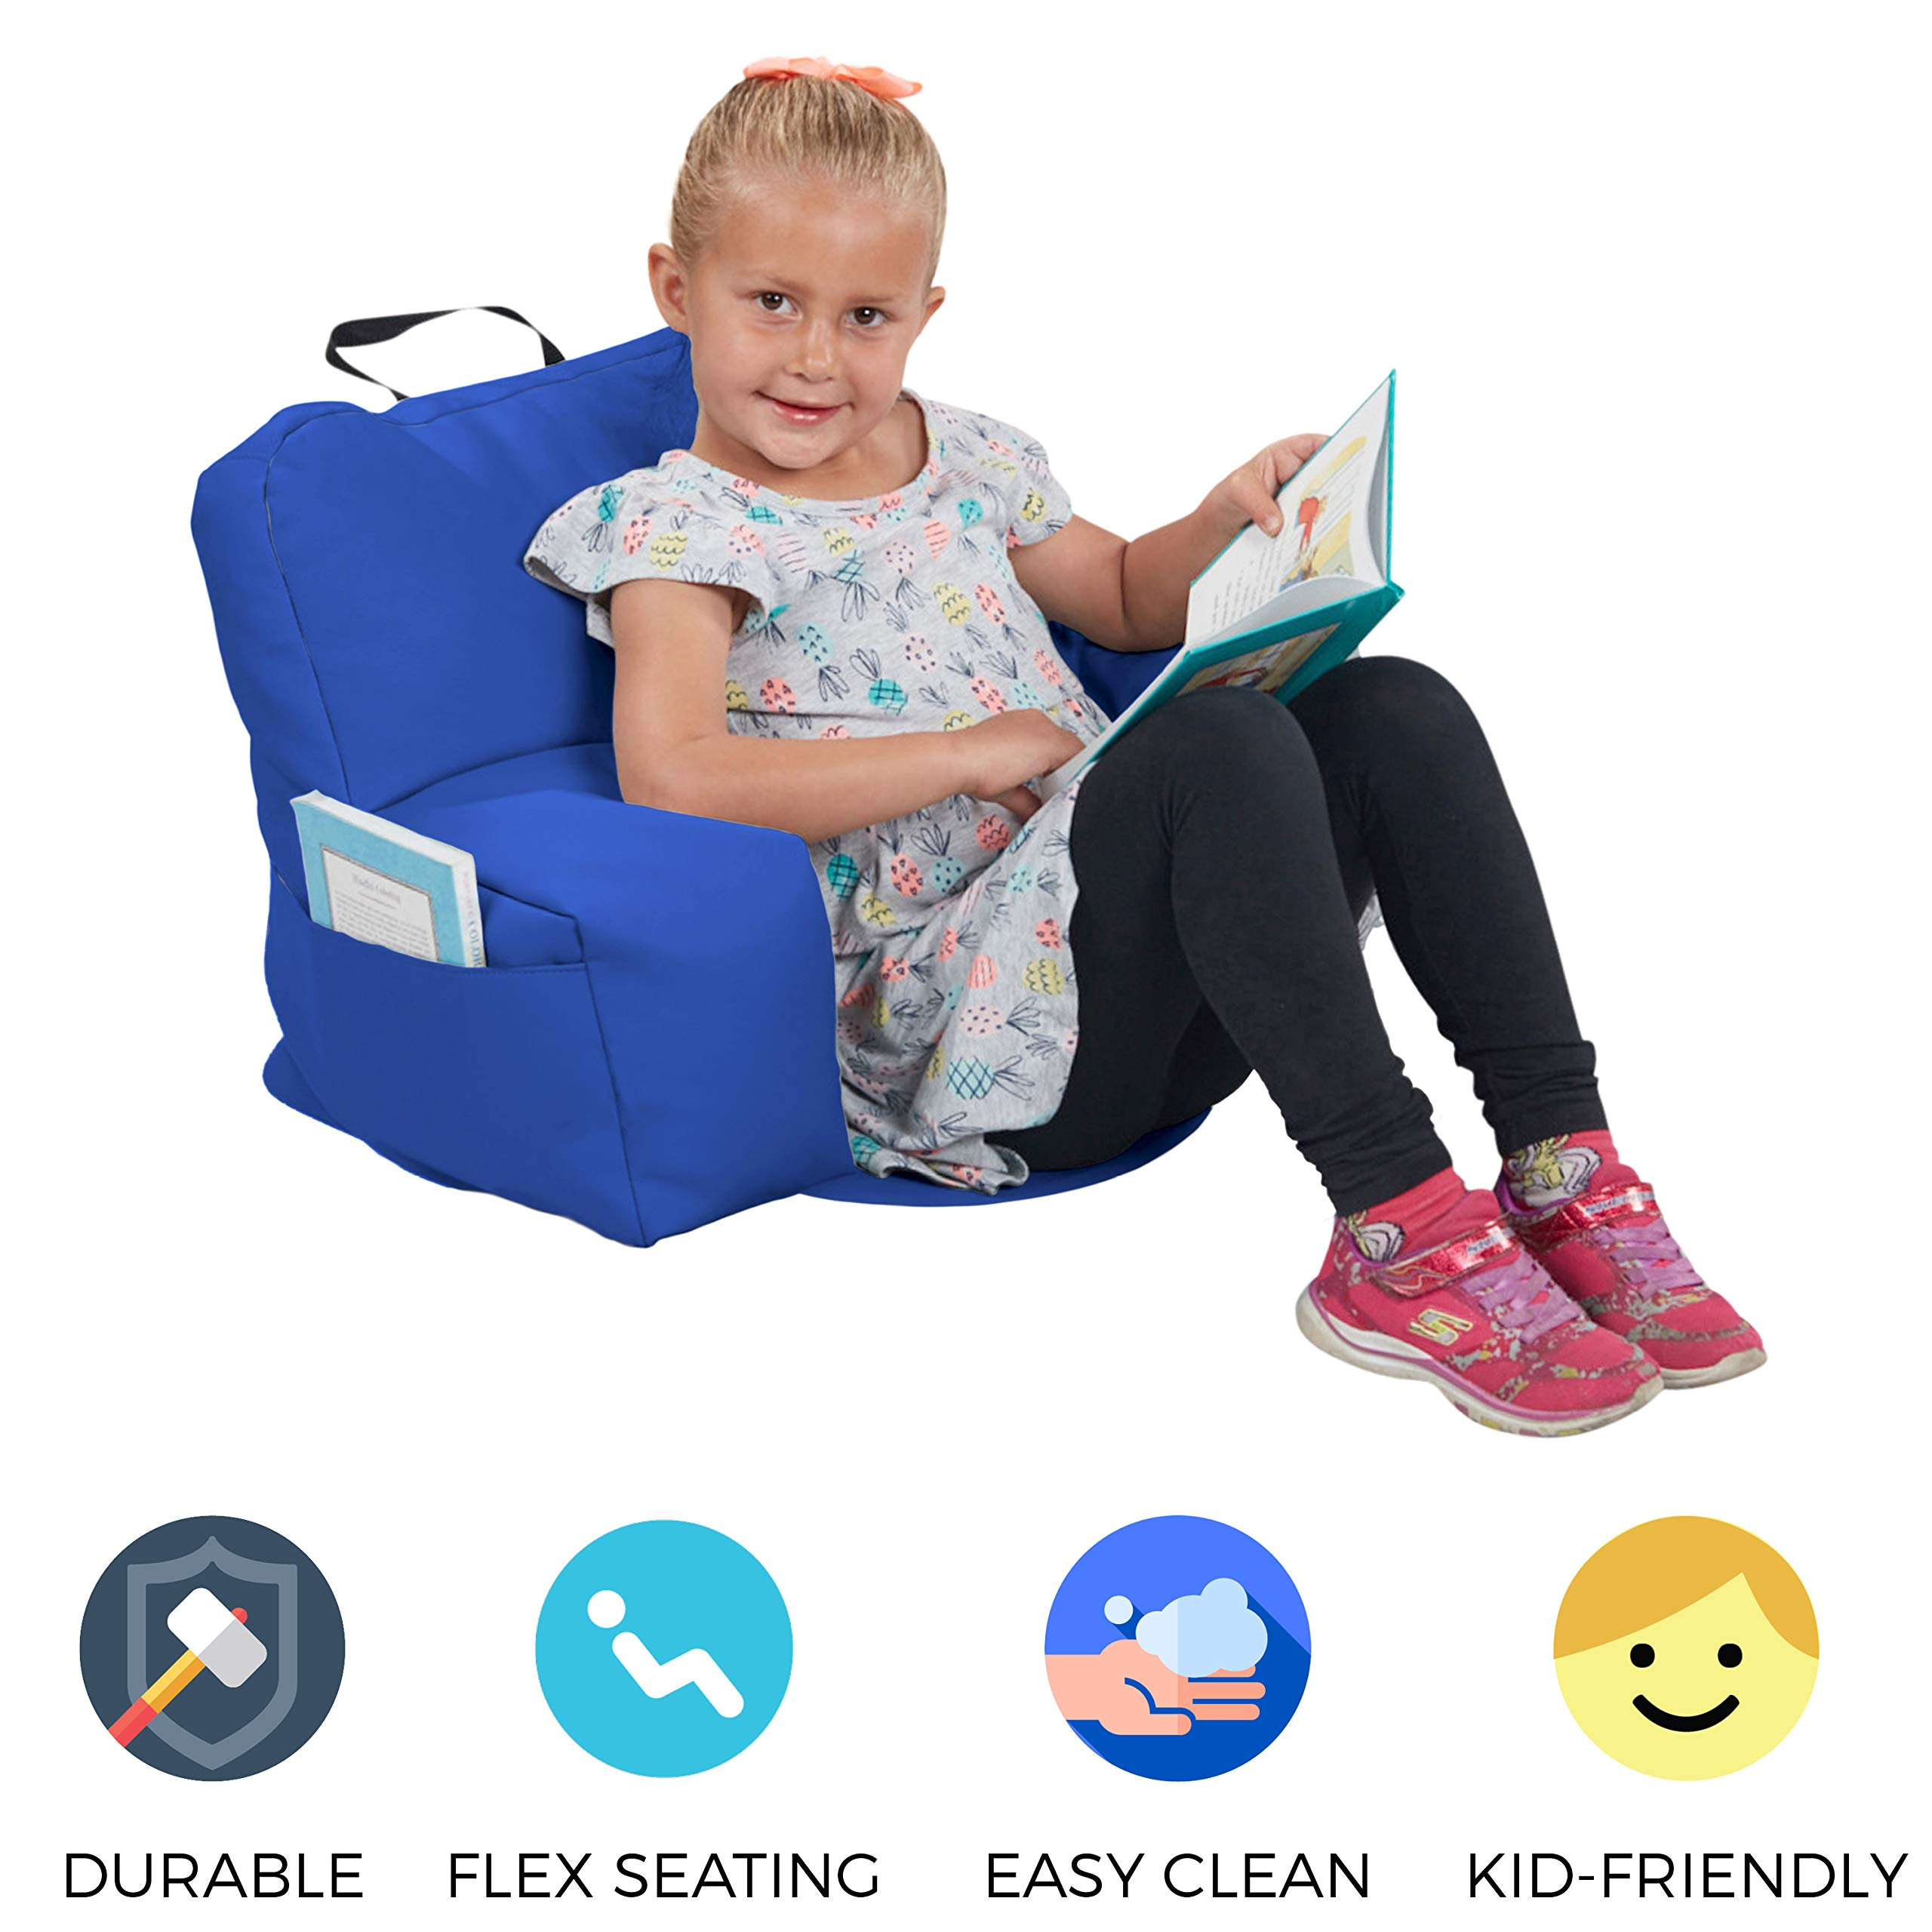 FDP SoftScape Relax-N-Read Bean Bag Chair with Supportive Back Rest and Storage Pockets, Flexible, Portable, Alternative Seating for Toddlers, Preschoolers, and Kids - Blue by Factory Direct Partners